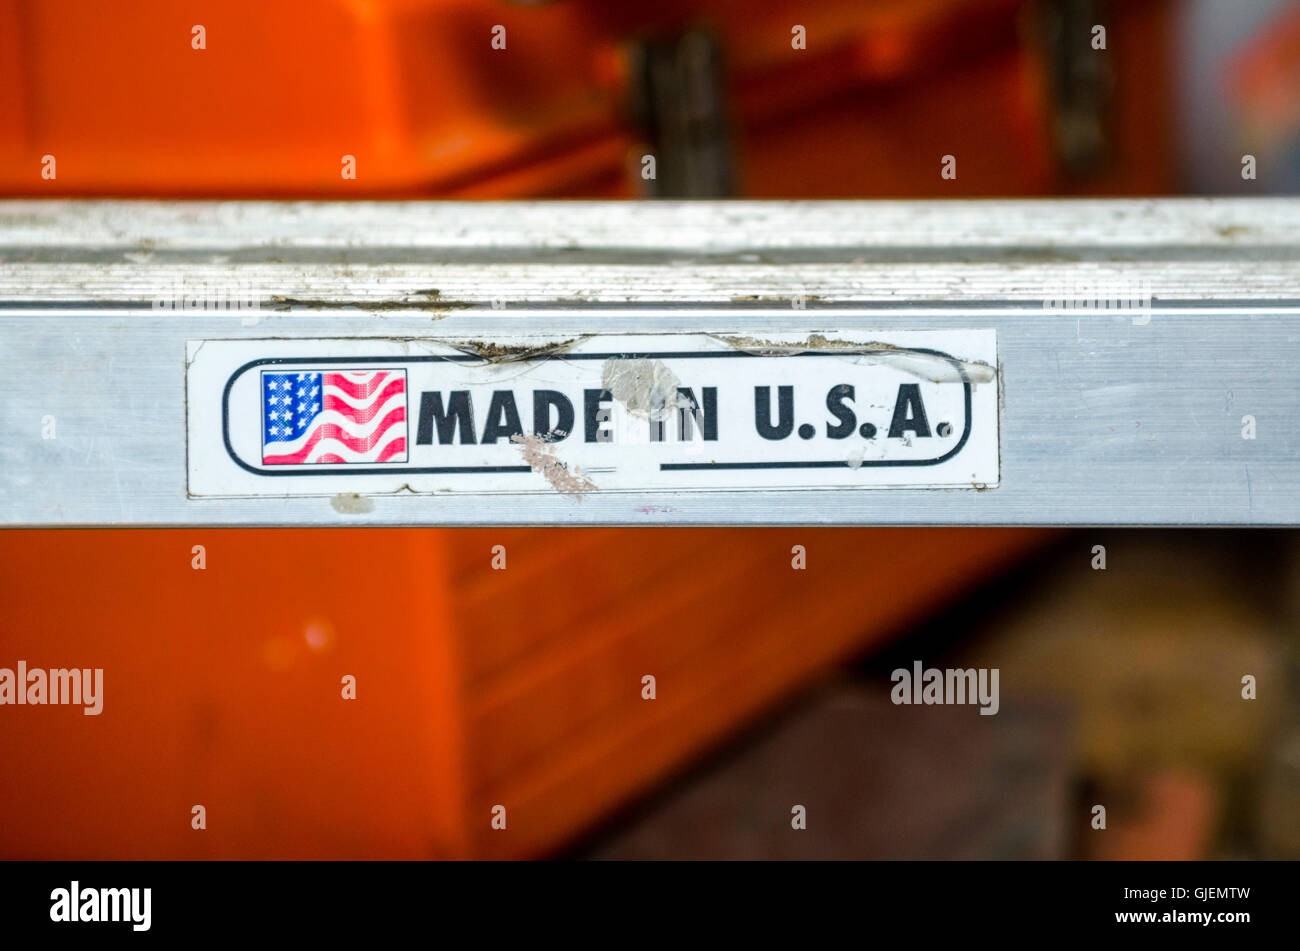 Made in U.S.A. on ladder rung - Stock Image